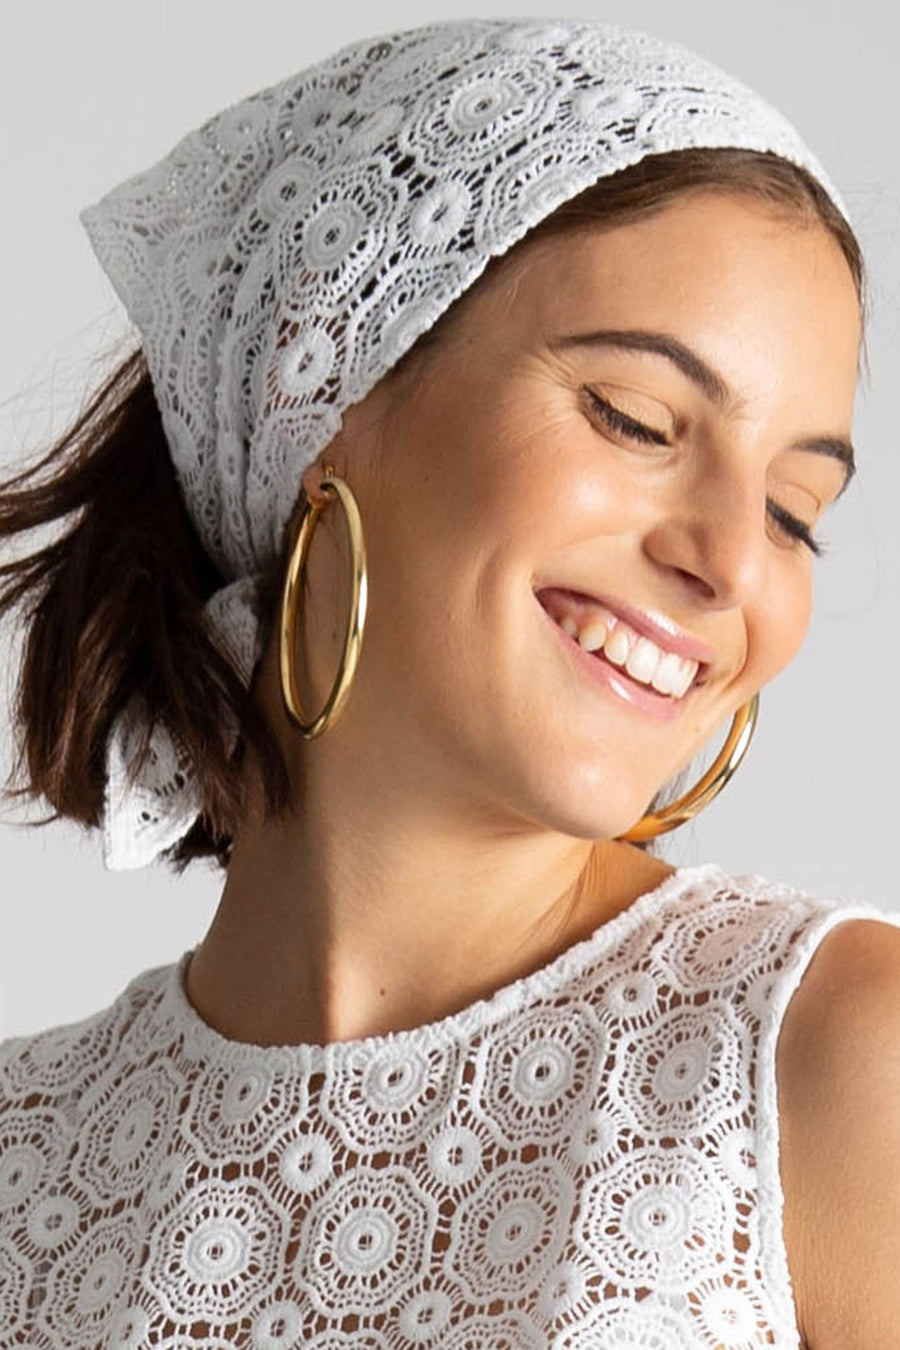 This is a photo of a girl wearing a lace headscarf with gold hoops and matching lace crop top. She smiles and looks over her shoulder.